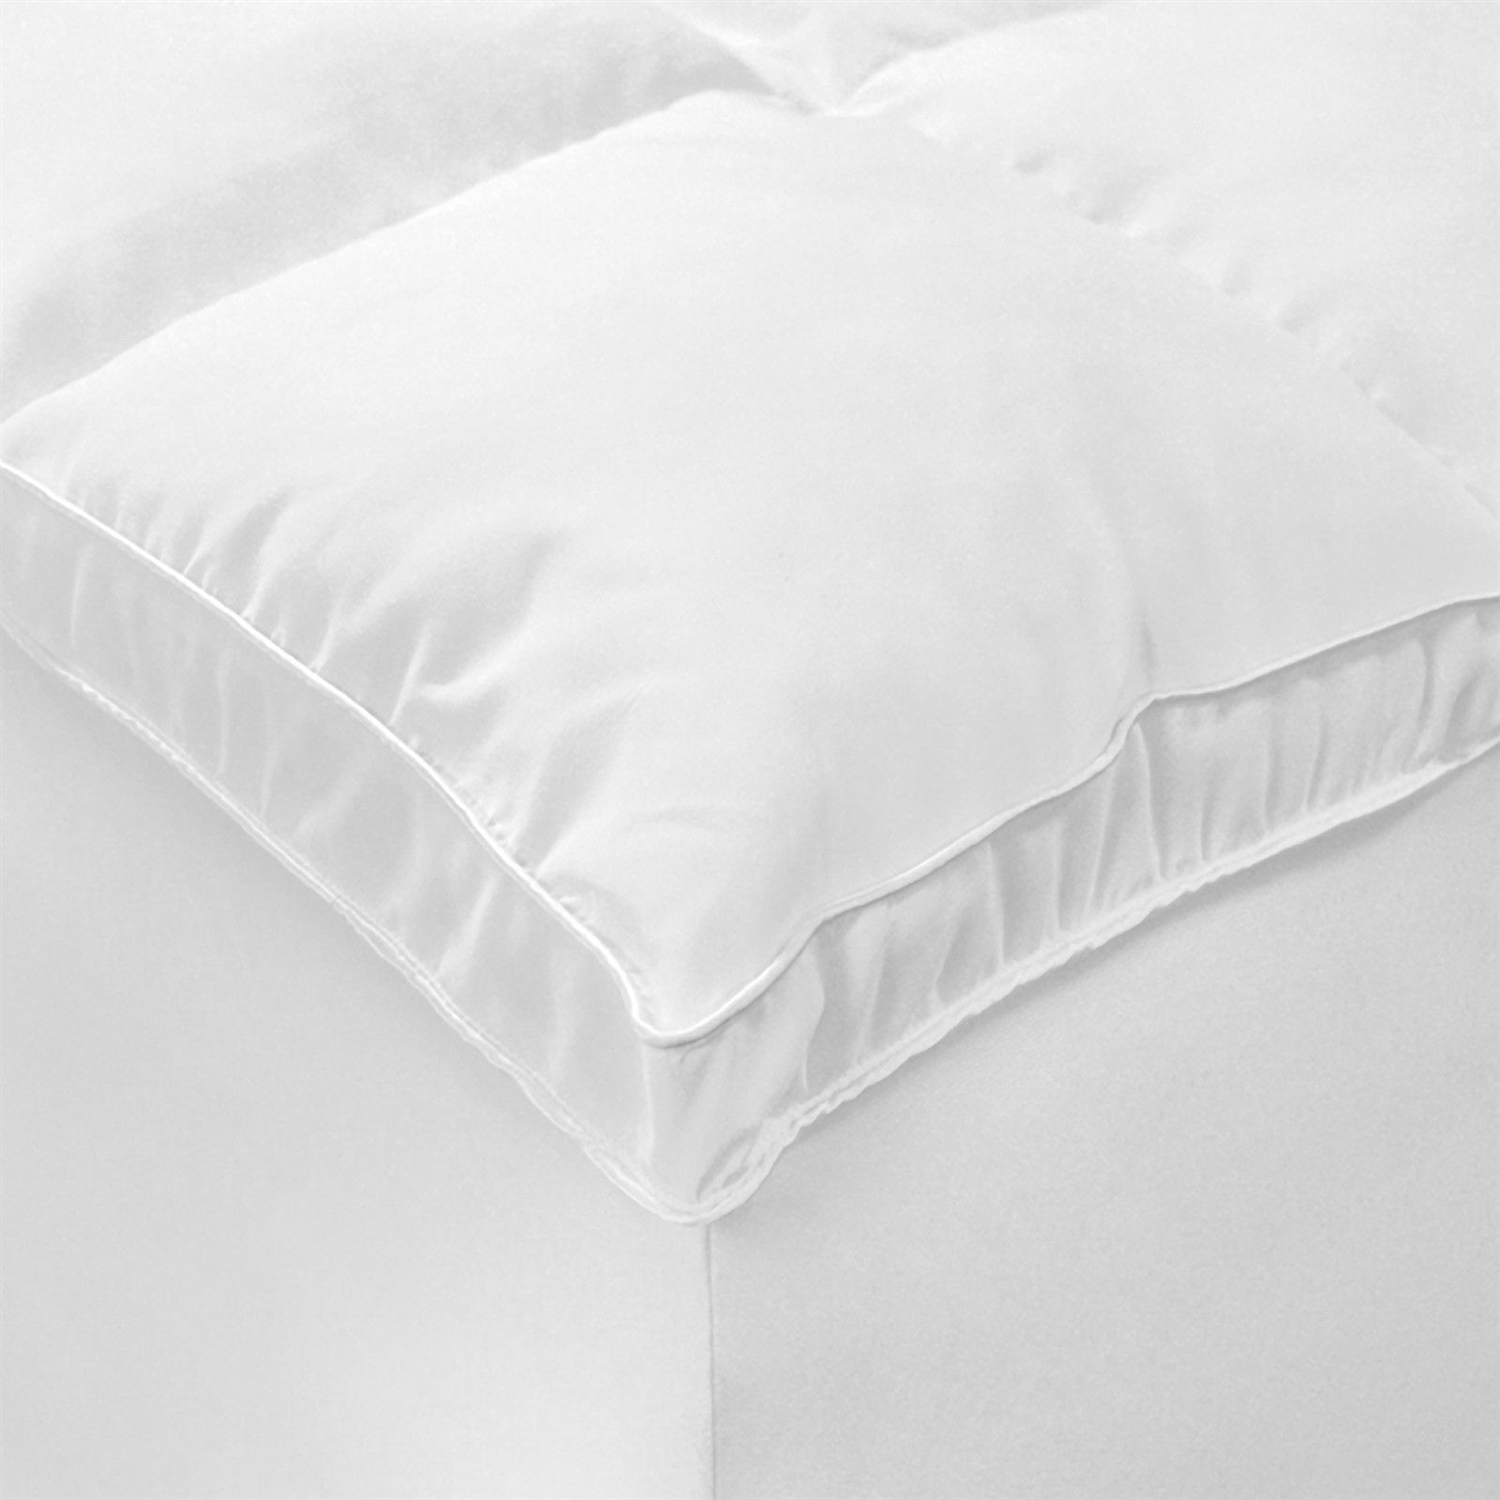 "With an ideal blend of simplicity and practicality, this Full-size Fiberbed Mattress Topper in Machine Washable Microfiber is the perfect combination of style and functionality. Its design features a box-like stitched pattern across the white colored surface. This fiber bed comes in handy whenever you want to add an extra layer of comfort to your mattress. This fiber bed is hypoallergenic, which makes it safe for use by people who are prone to allergies. This fiber bed also features an elastic-lined skirt, which ensures that the fiber bed sits firmly in its place. Fabricated from polyester, the Microfiber Fiber Bed from Ideal Comfort is durable and lasts for a long time to come. Adds an extra layer of softness to your bed; Provides extra-cushiony support to relieve pressure points, allowing you a warm and comfortable slumber night after night; Stretchy 18"" elastic-lined skirt to help keep your fiber bed in place while you sleep; Added 1.5"" gusset and a baffle box quilted construction to keep the filling from shifting."